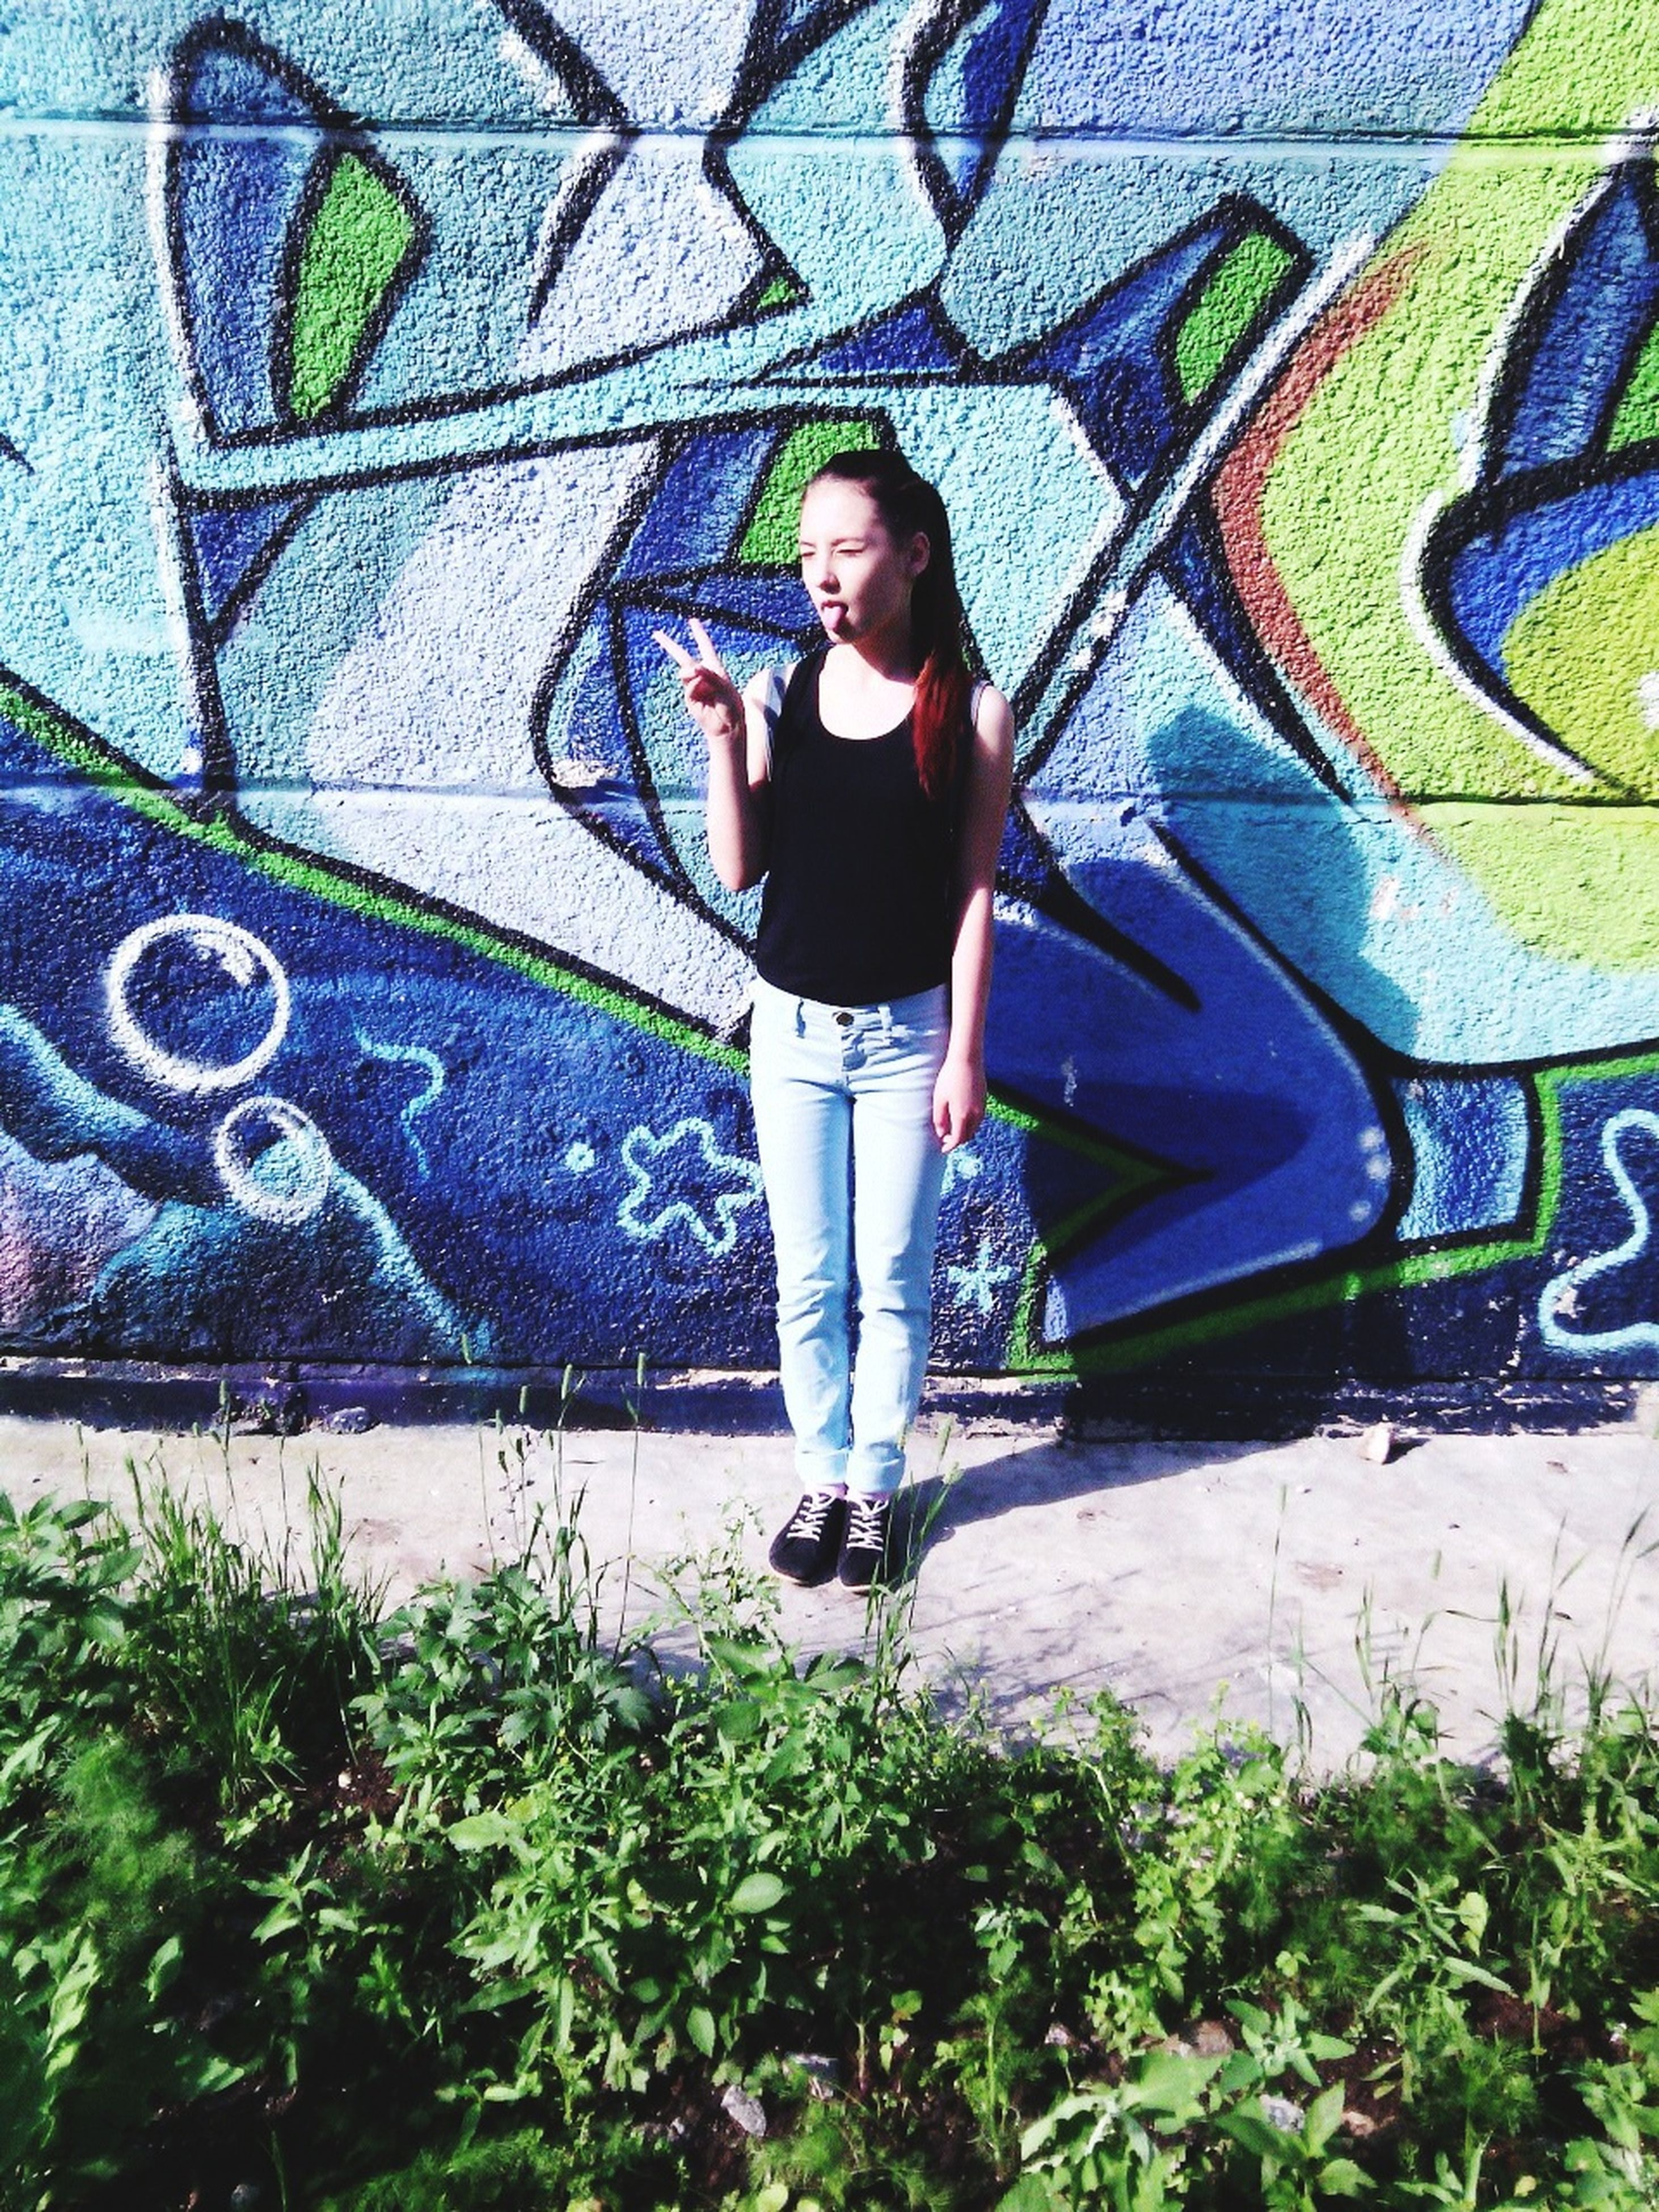 young adult, looking at camera, portrait, lifestyles, graffiti, person, casual clothing, young women, wall - building feature, front view, full length, leisure activity, standing, art, architecture, smiling, built structure